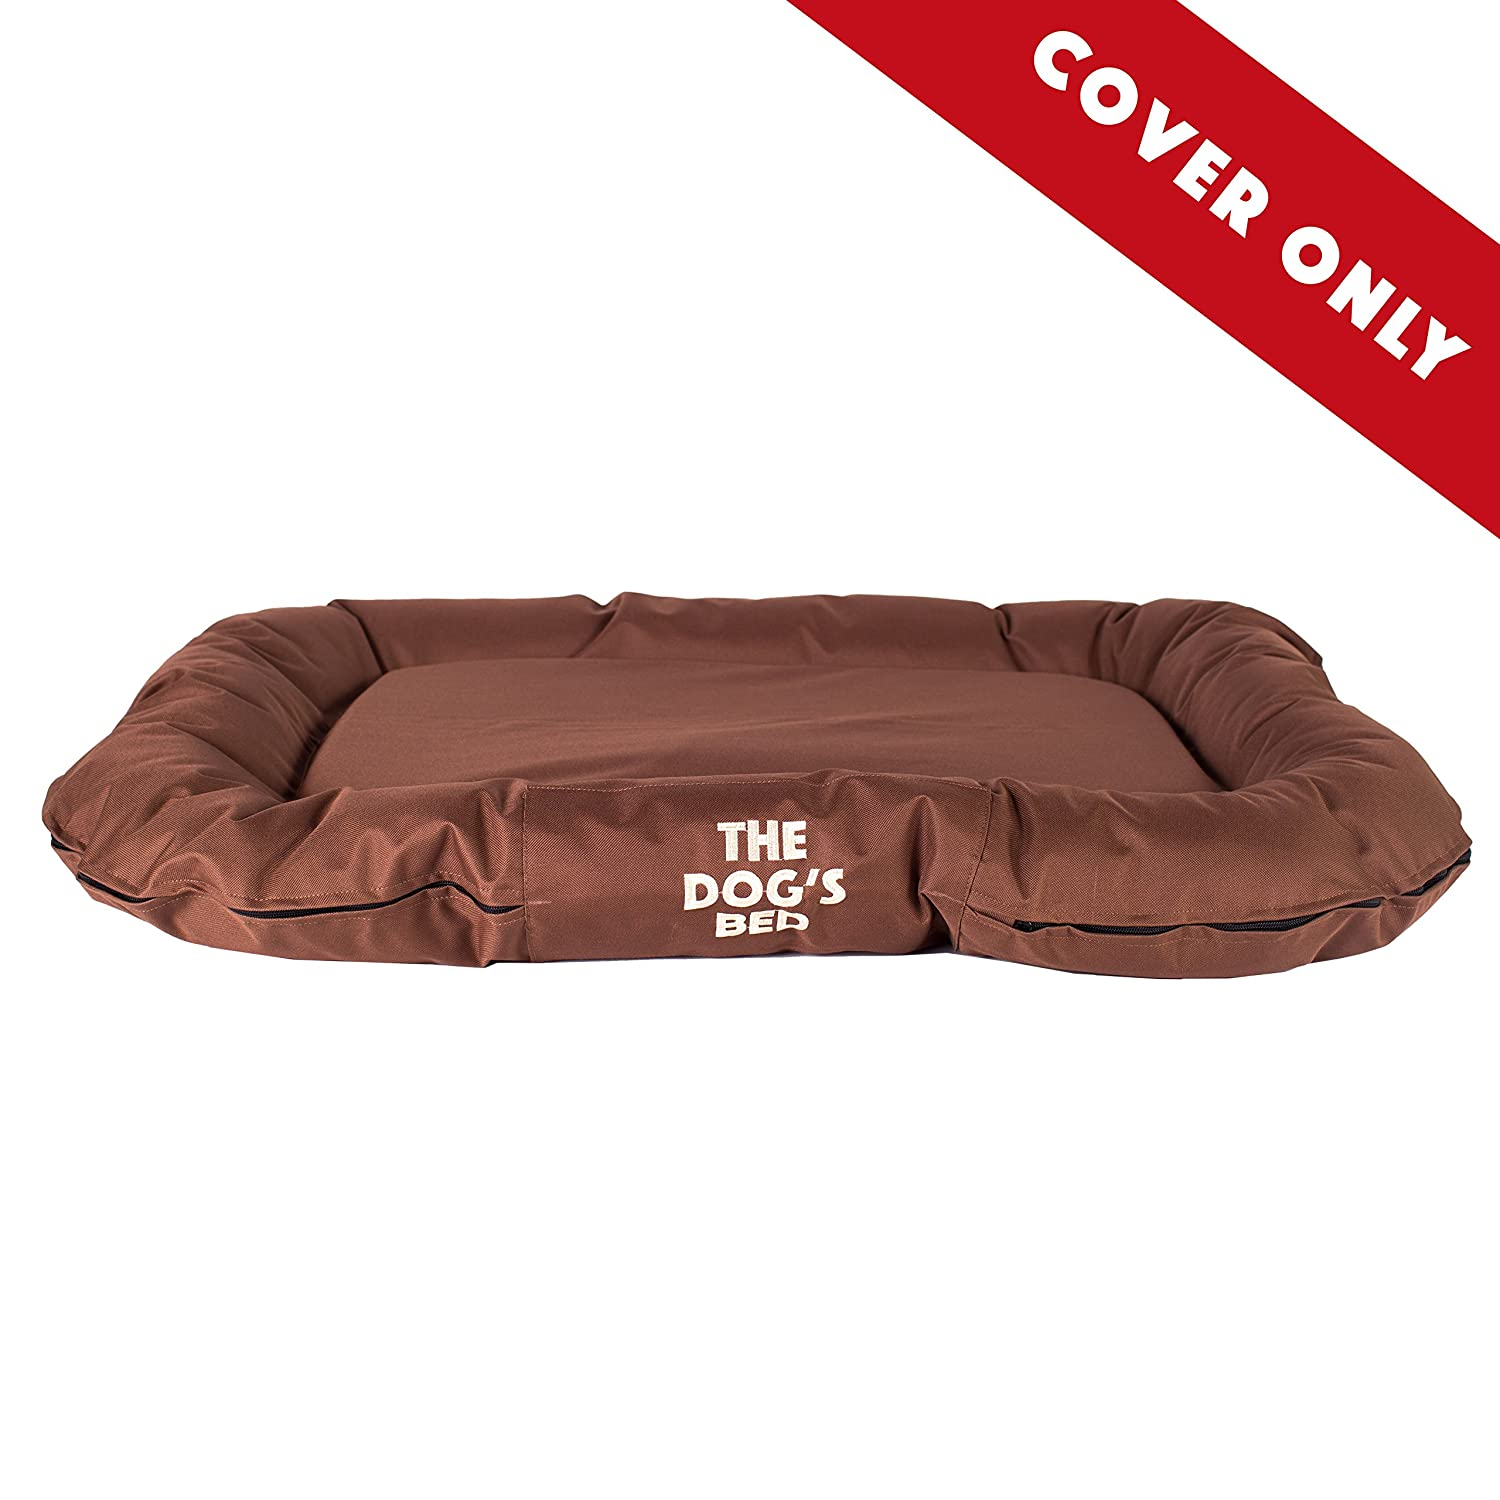 Brown Large Cover Brown Large Cover Replacement Cover ONLY for The Dog's Bed, Washable Quality Oxford Fabric, Large 37.5  x 27.5